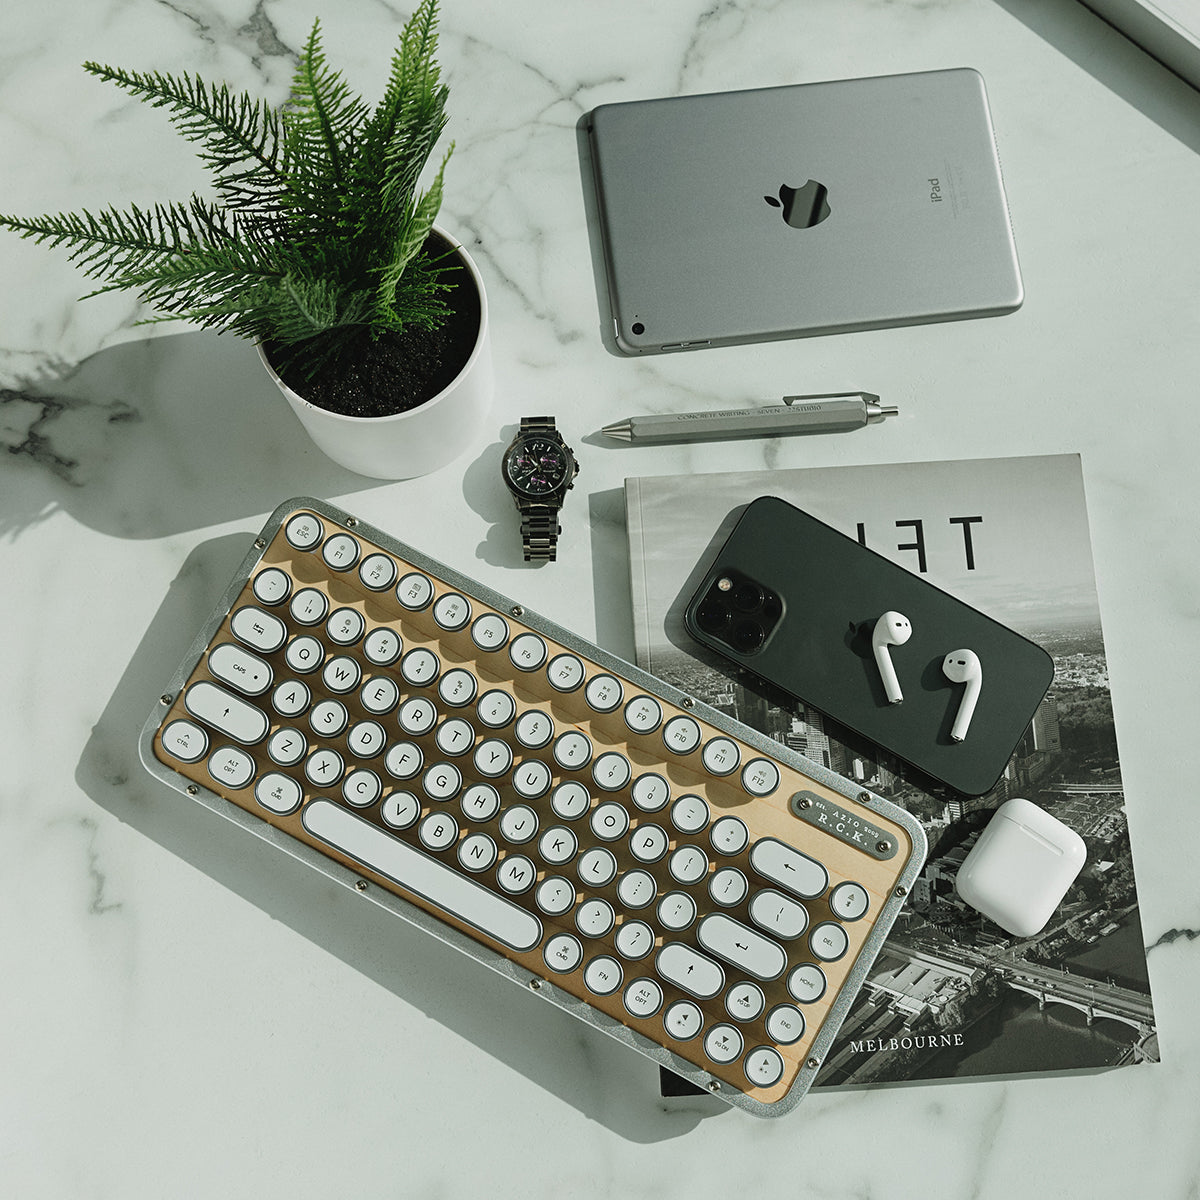 RETRO COMPACT KEYBOARD (RCK)